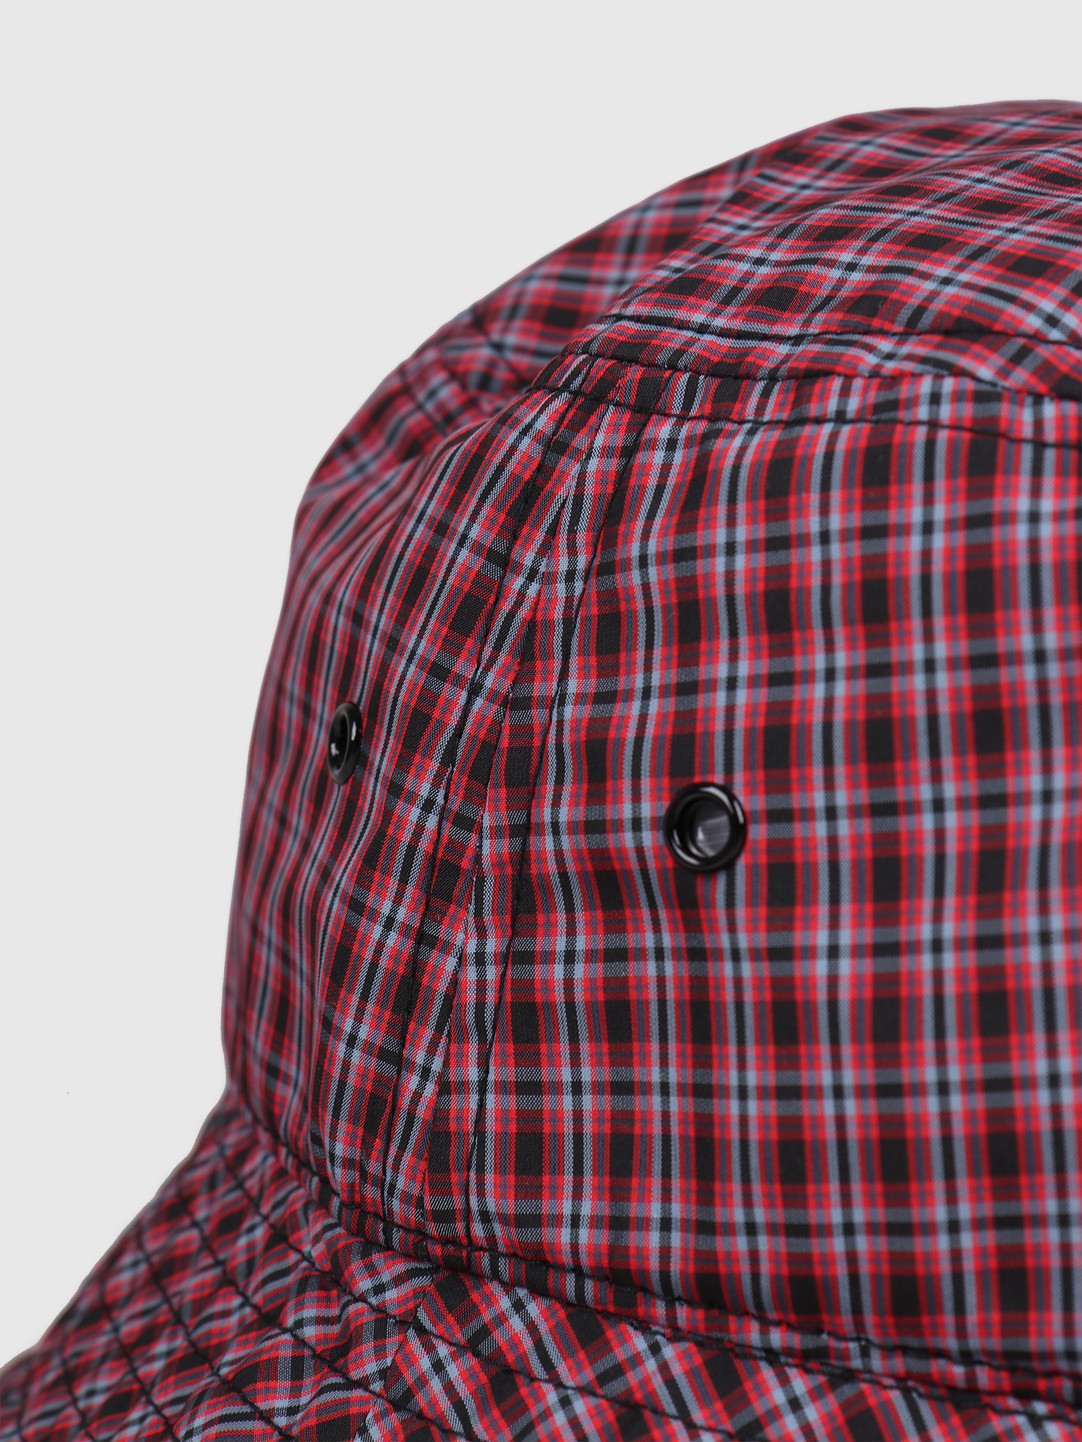 Carhartt WIP Carhartt WIP Alistair Bucket Hat Alistair Check Black Etna Red Check I027616-8907